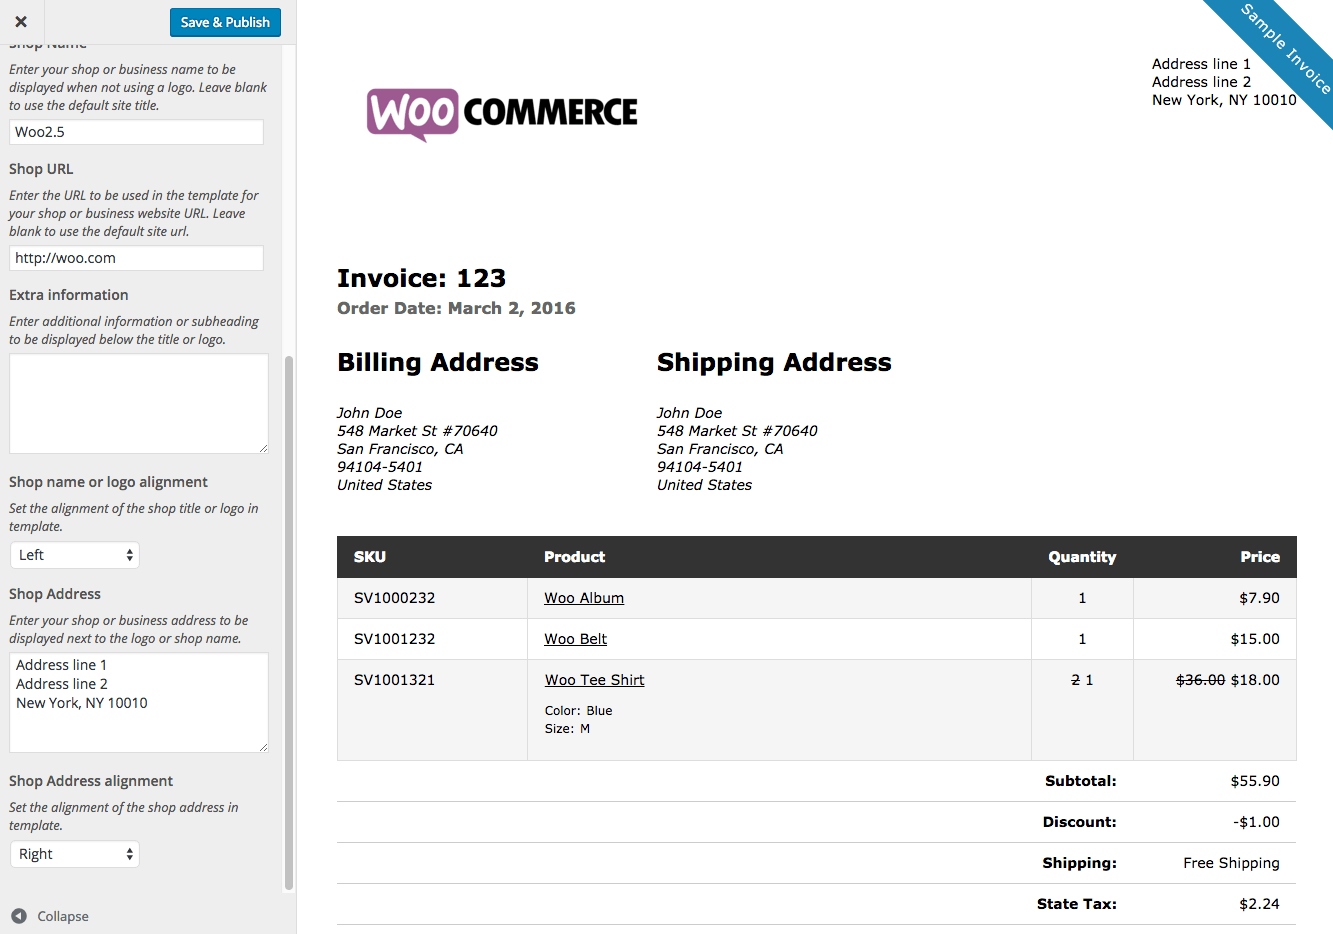 Maidofhonortoastus  Outstanding Woocommerce Print Invoices Amp Packing Lists  Woocommerce Docs With Extraordinary Woocommerce Print Invoices  Packing Lists Customizer With Amusing Free Invoice App For Android Also Free Invoice Templates Word In Addition Edi  Invoice And Consultant Invoice Template Excel As Well As What Is The Invoice Additionally Send An Invoice Ebay From Docswoocommercecom With Maidofhonortoastus  Extraordinary Woocommerce Print Invoices Amp Packing Lists  Woocommerce Docs With Amusing Woocommerce Print Invoices  Packing Lists Customizer And Outstanding Free Invoice App For Android Also Free Invoice Templates Word In Addition Edi  Invoice From Docswoocommercecom